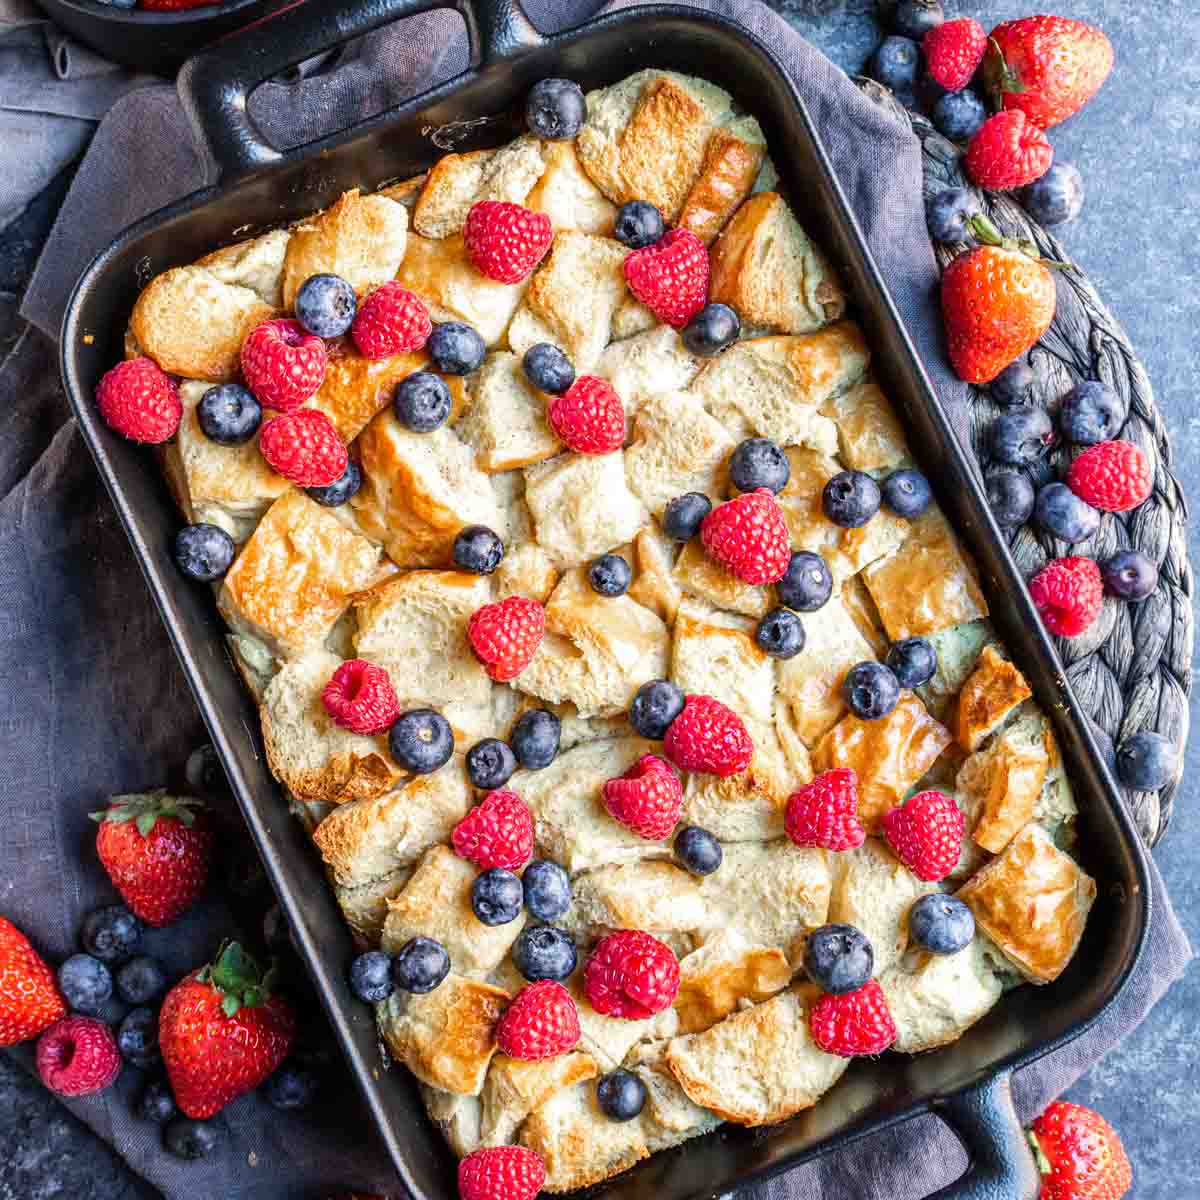 platter with Overnight French Toast Bake topped with fresh berries